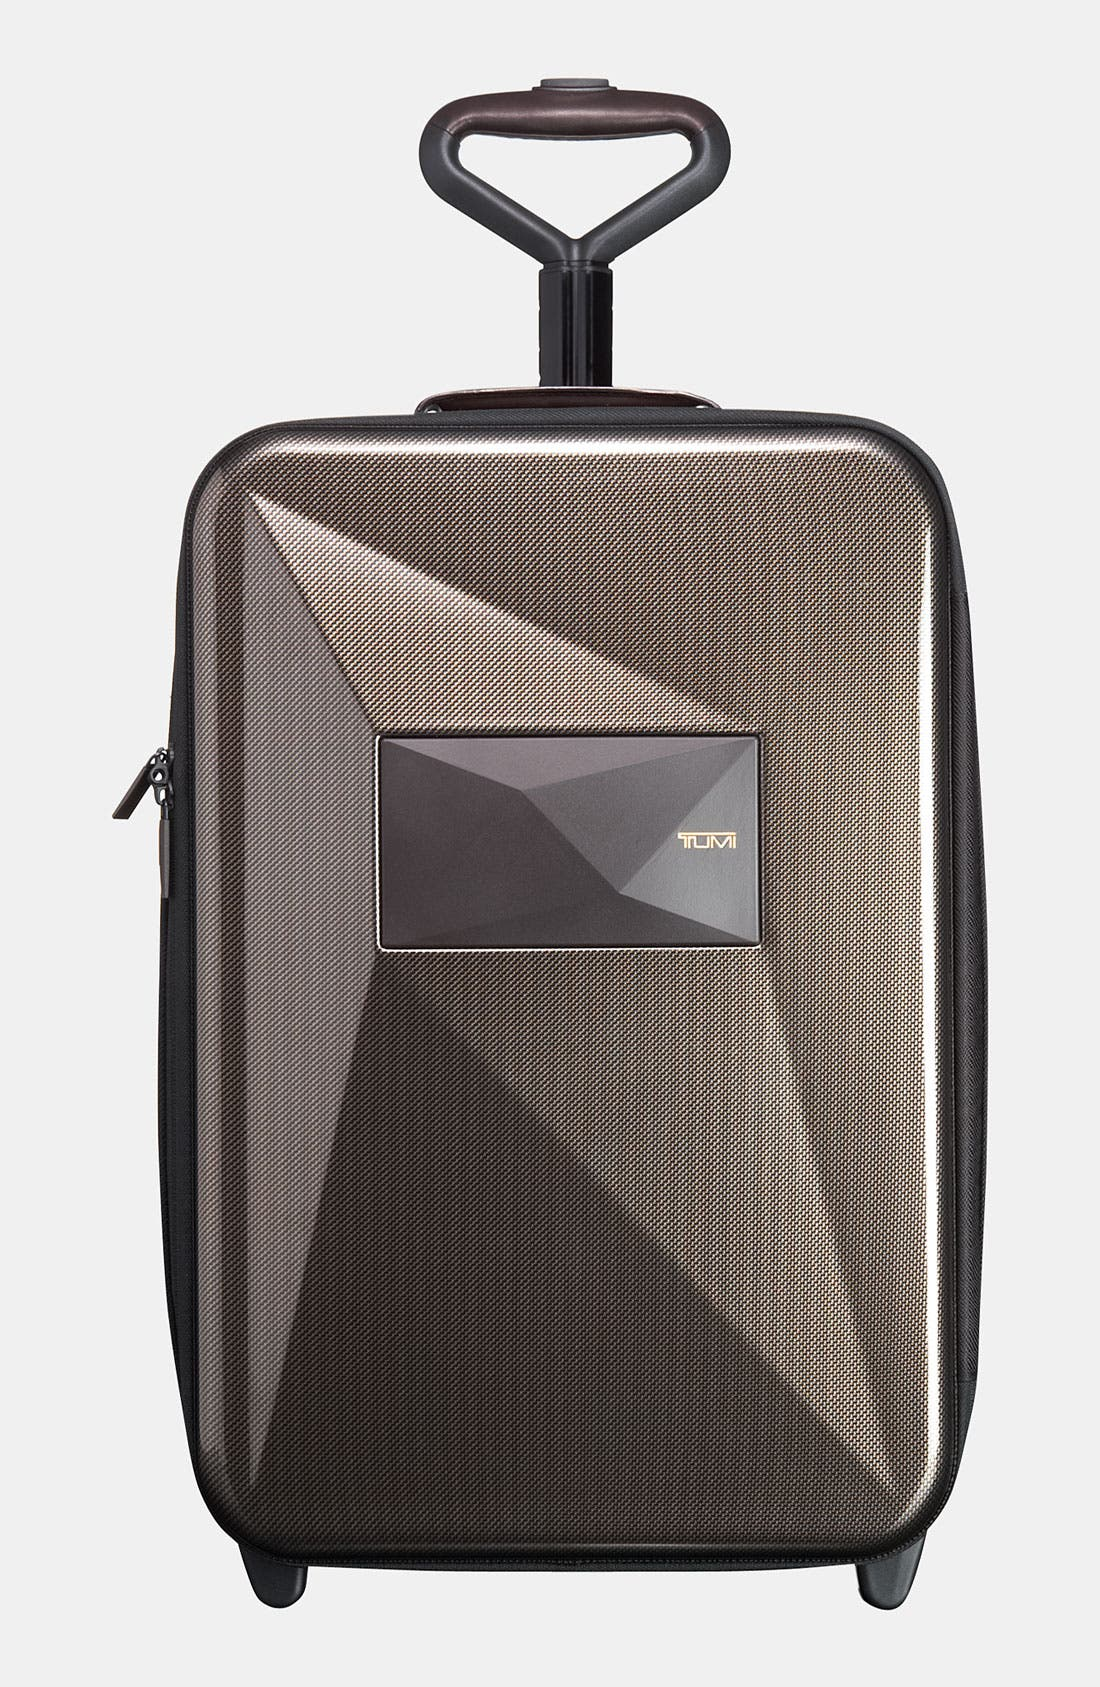 Main Image - Tumi 'Dror' International Expandable Carry-On